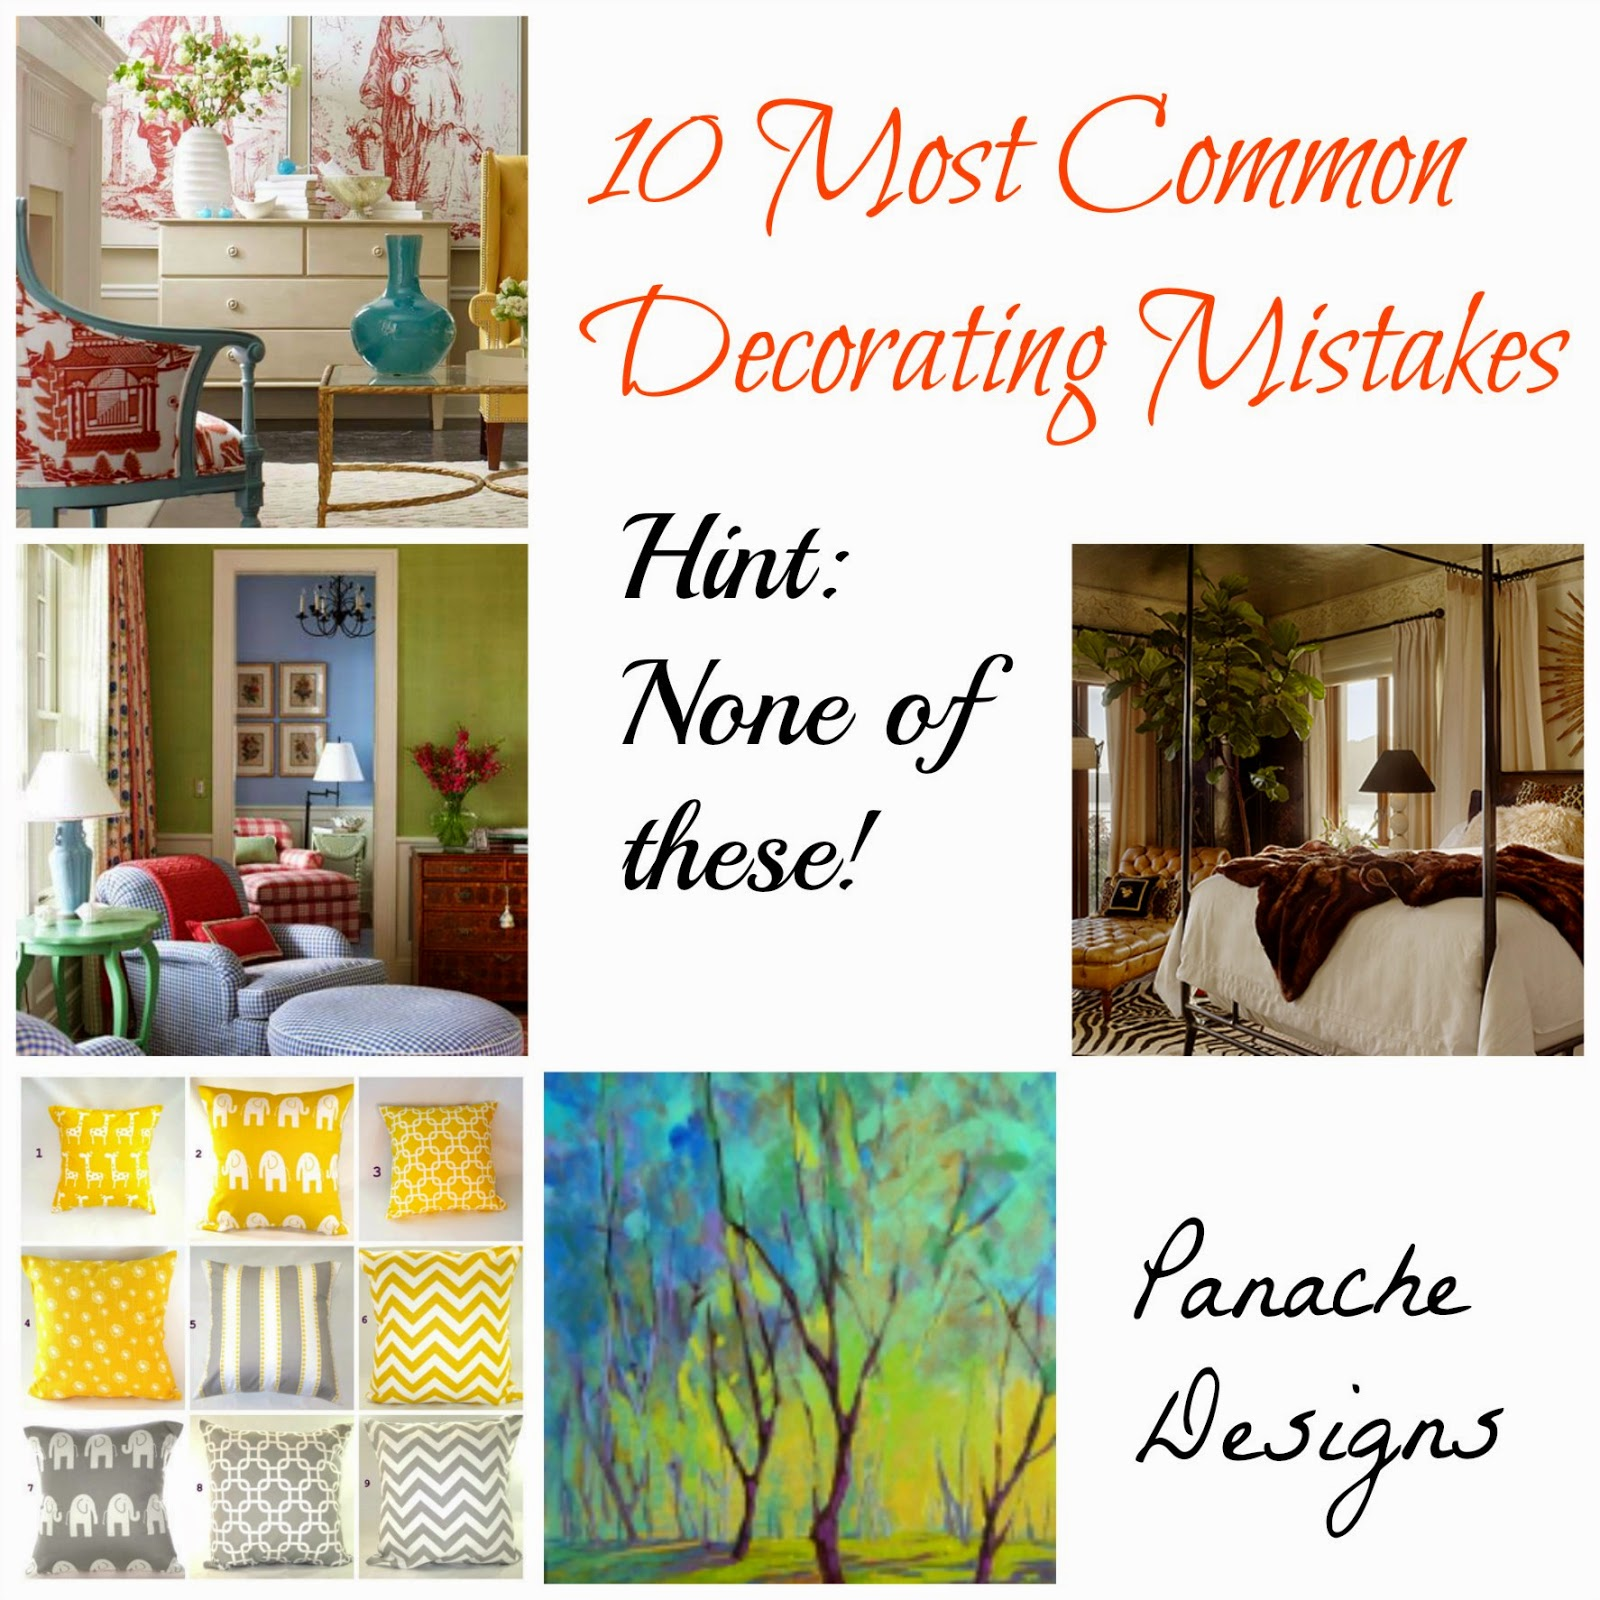 7 Design Mistakes To Avoid In Your Hall: 10 Most Common Decorating Mistakes